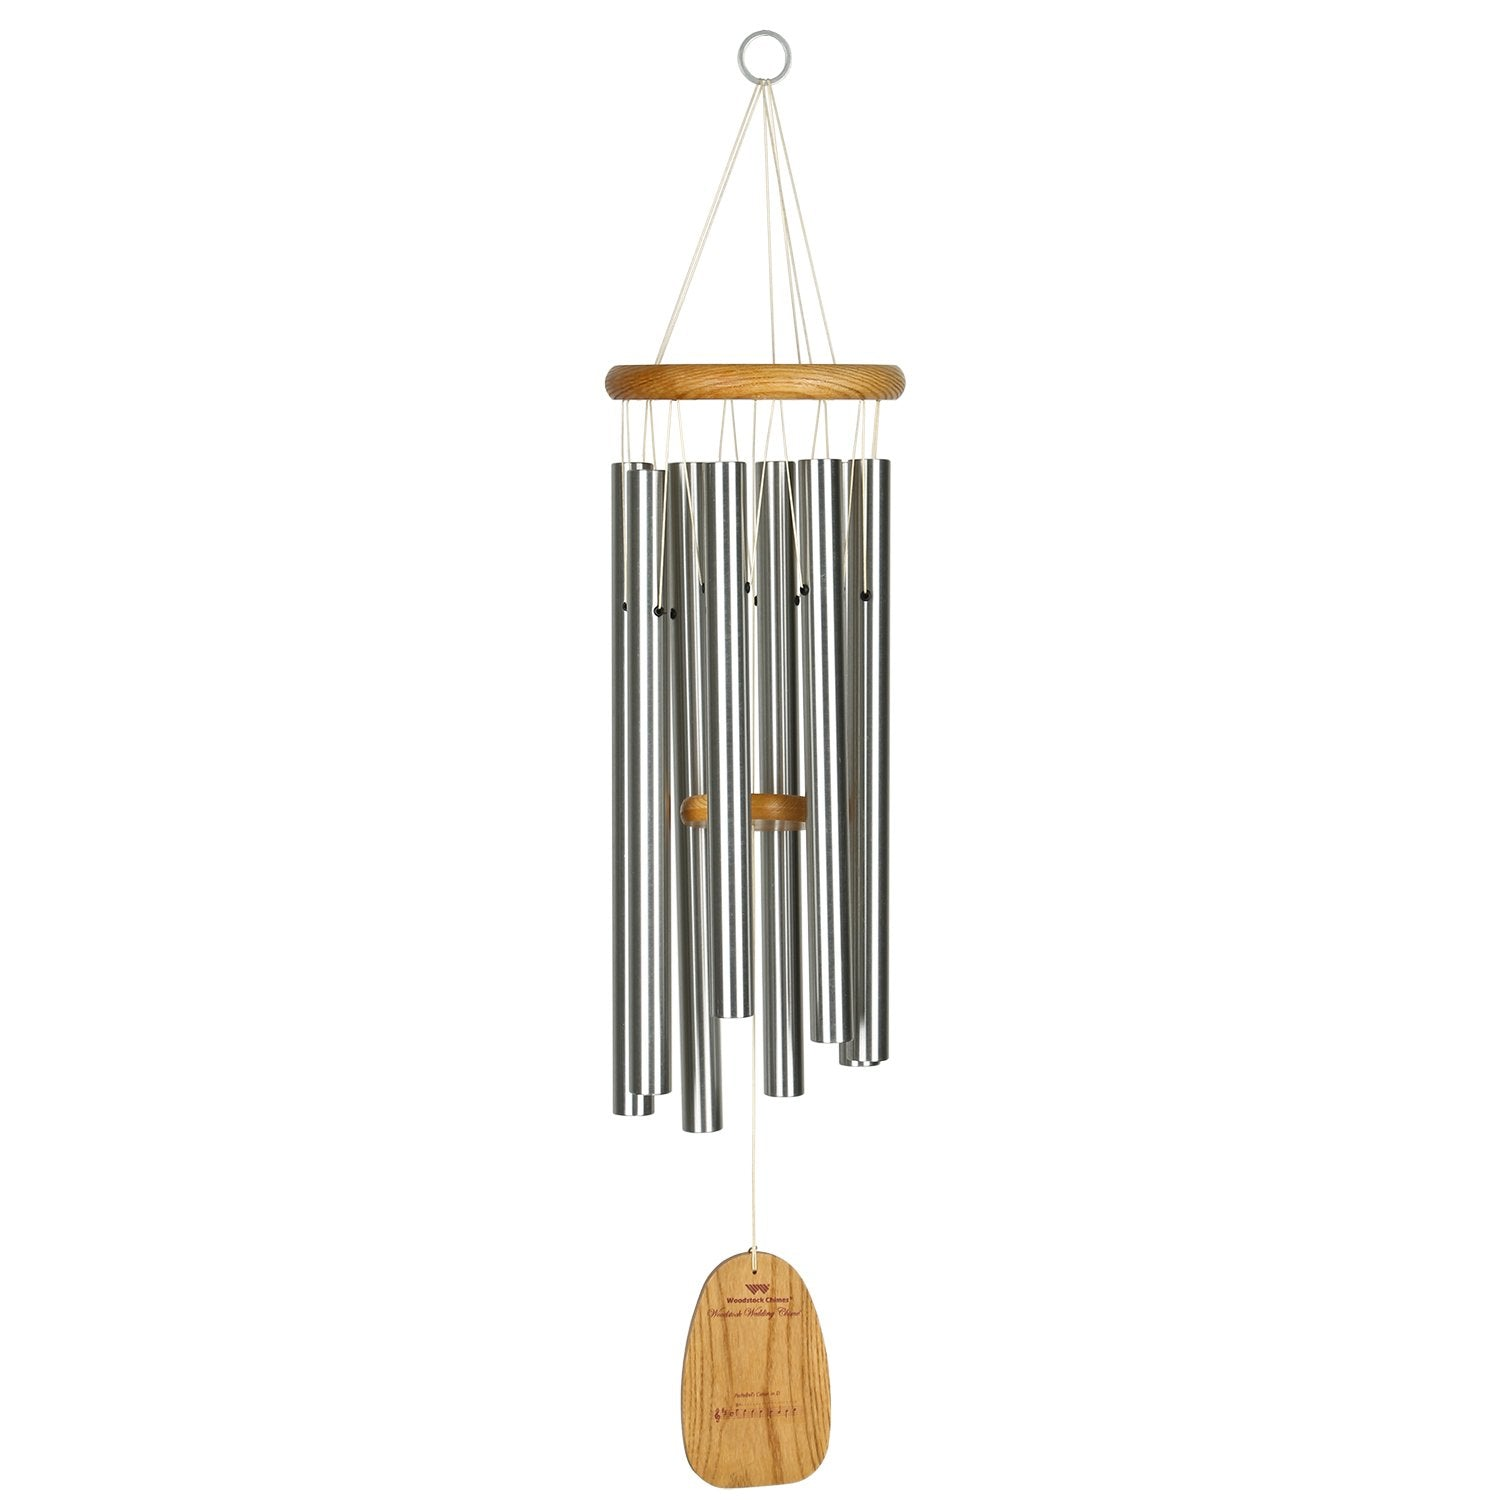 Wedding Chime - Large full product image